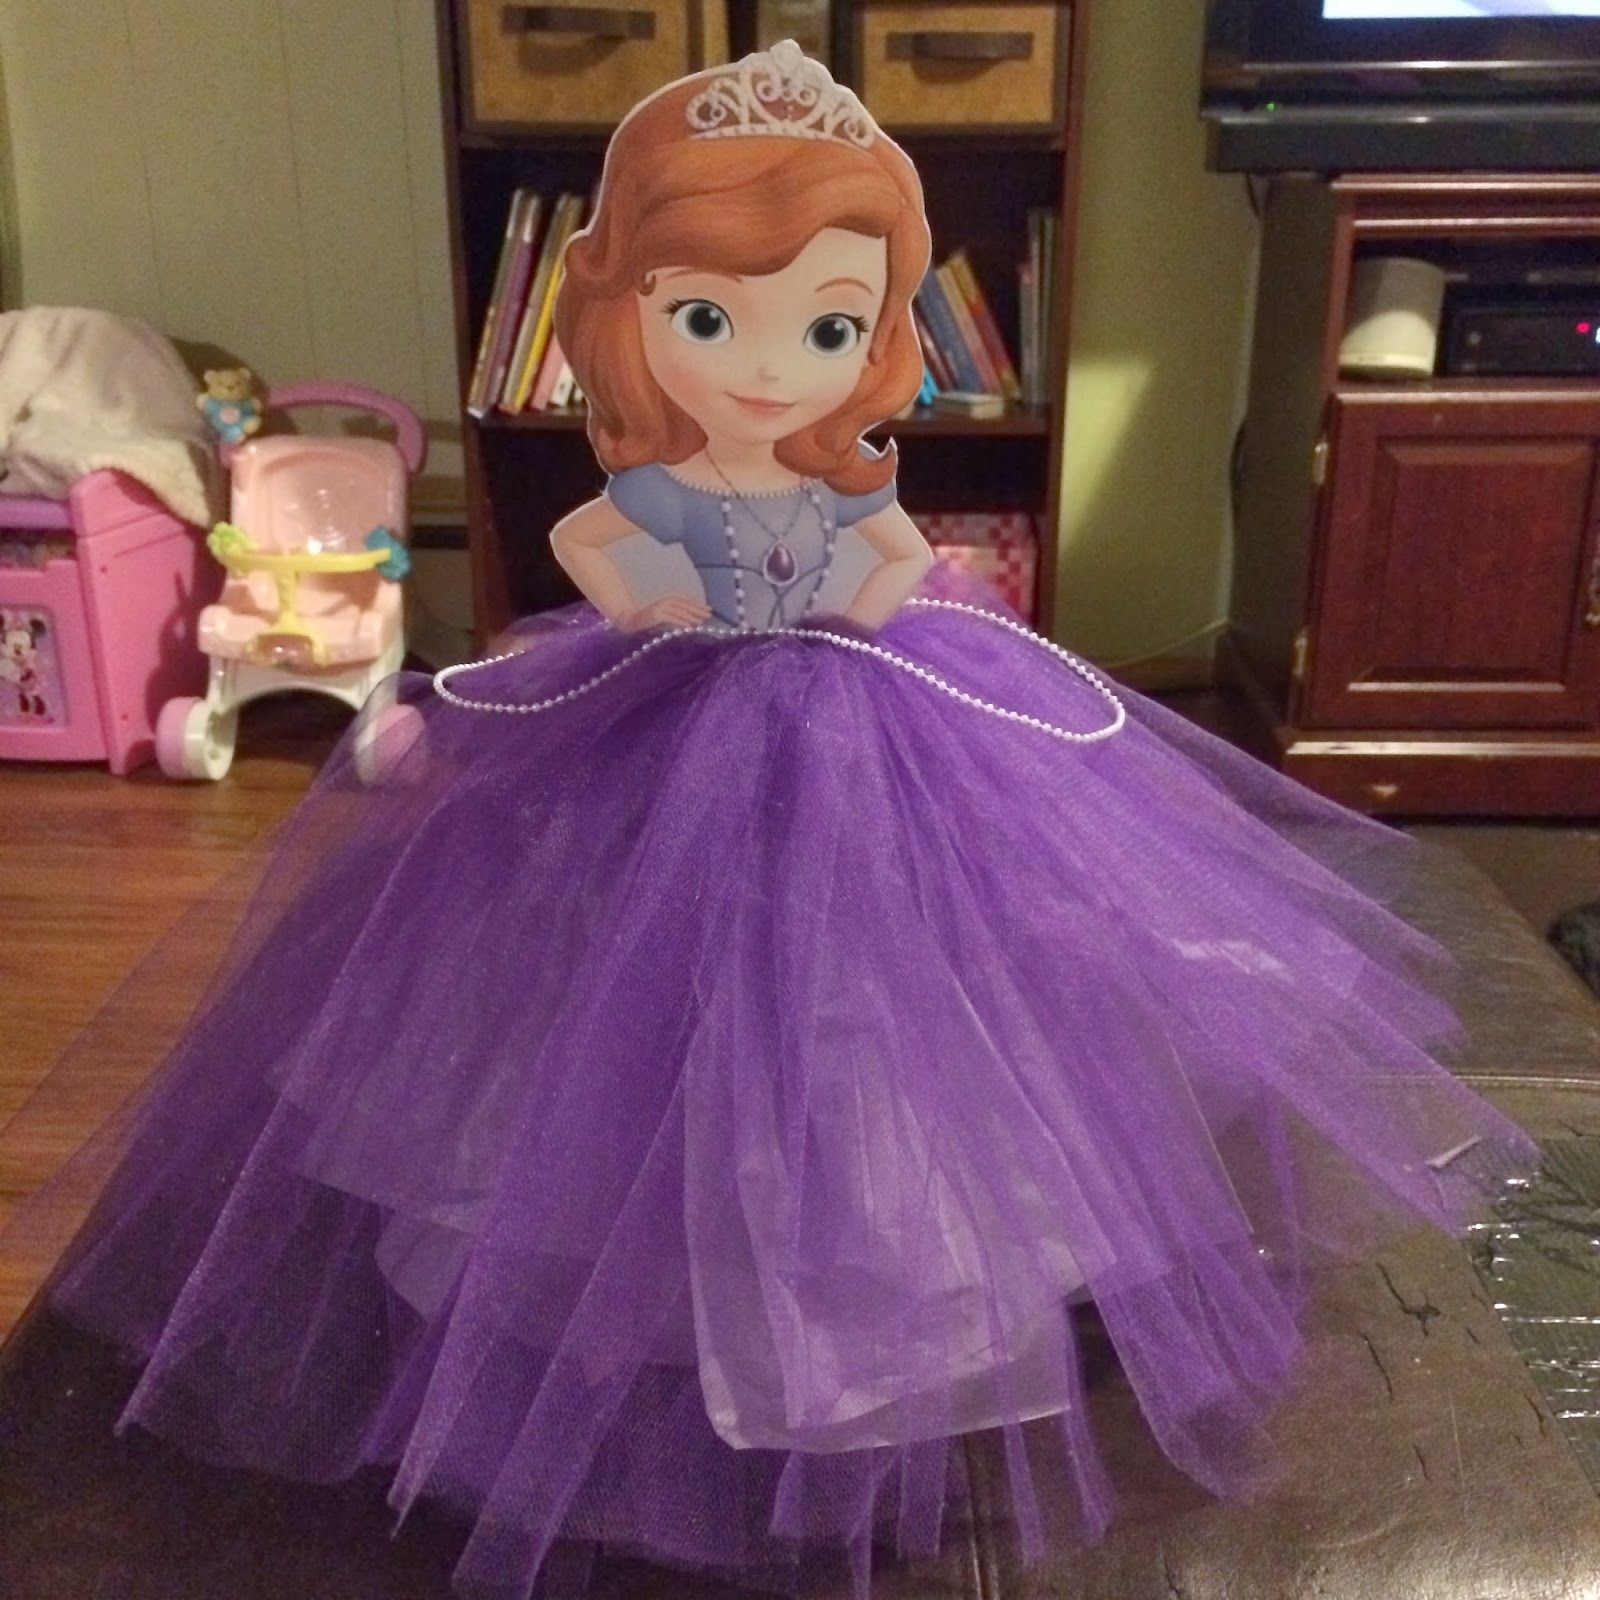 Sofia The First Bedroom Decor Sofia The First Character Disney The Ojays And Sofia The